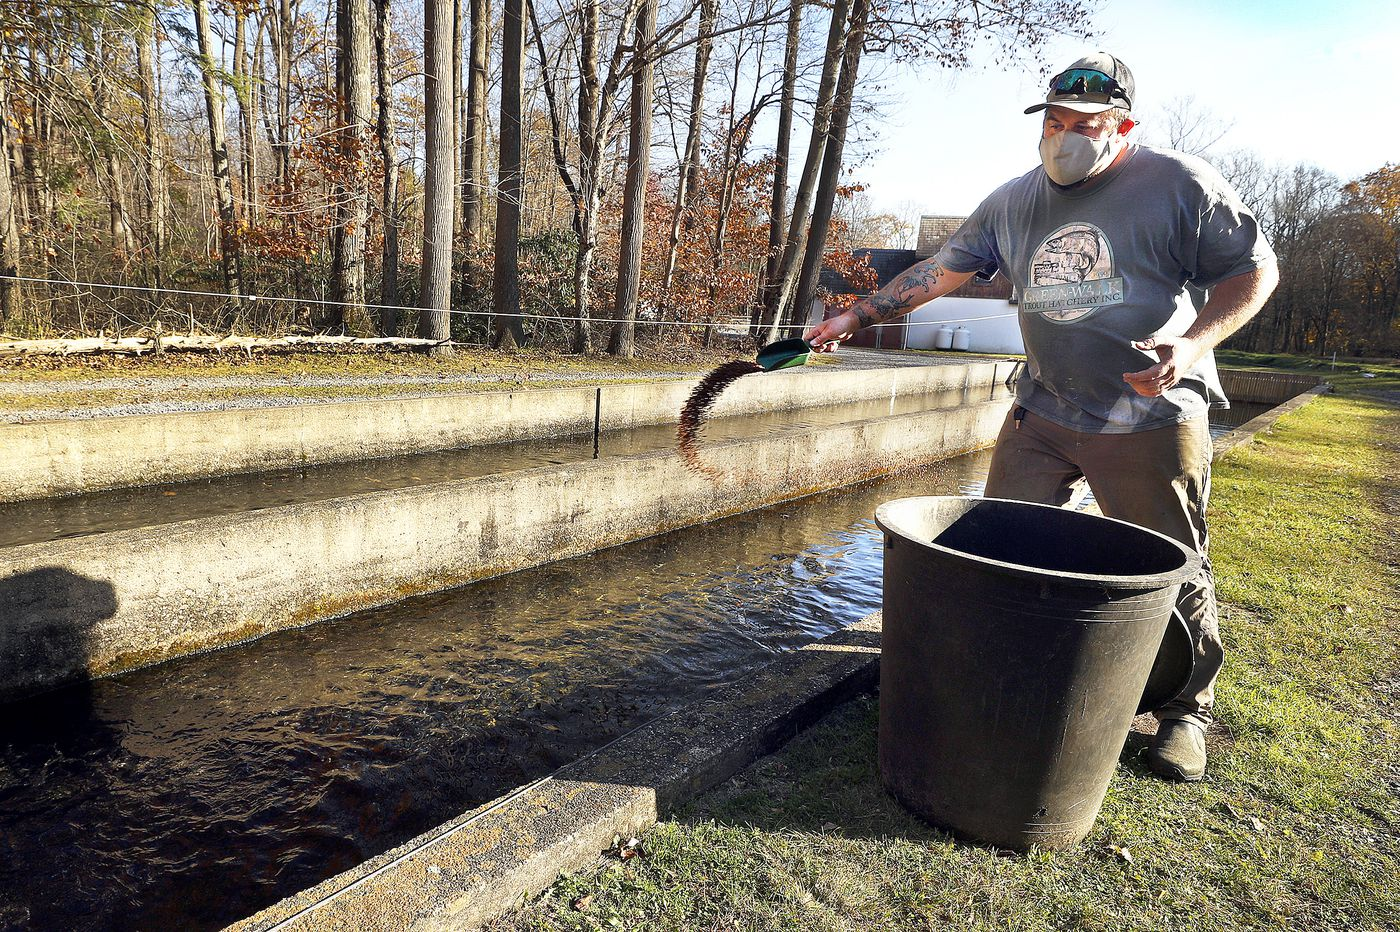 Lehigh Valley trout farm finds new success supplying top restaurants